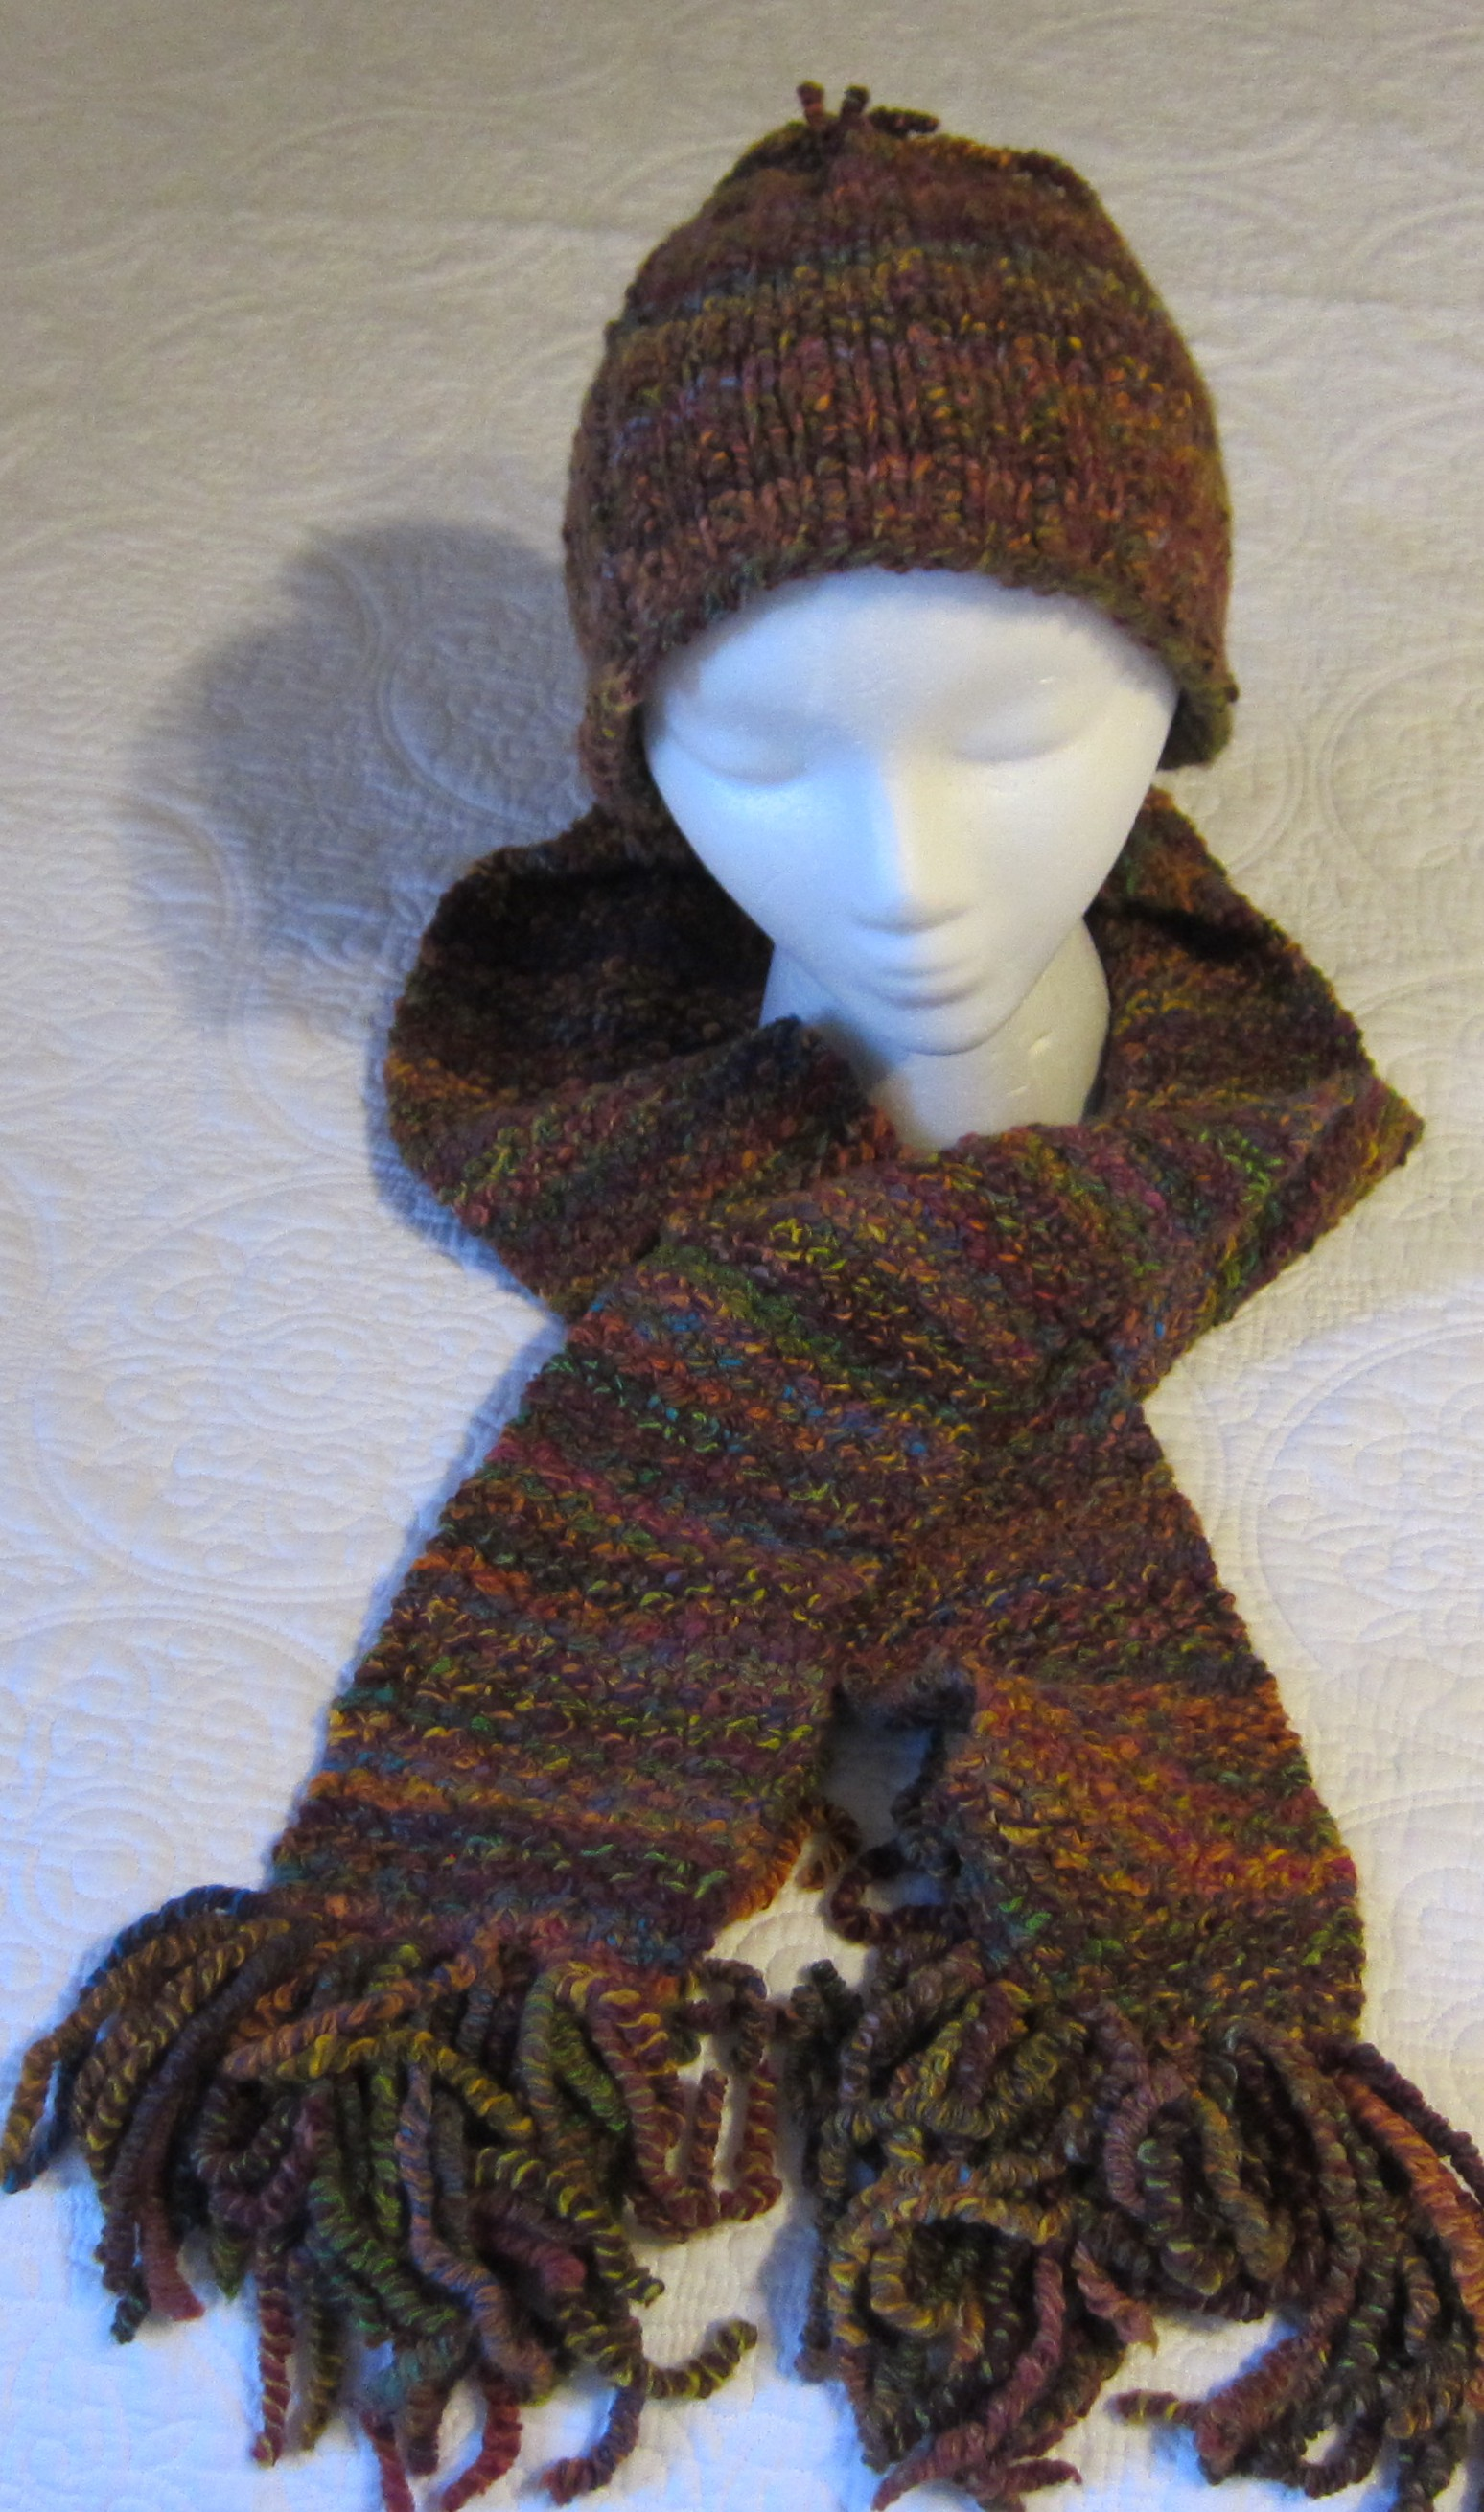 Knitting Patterns For Girls Cardigans : Knitted Scarf and Crochet Hat Set in Curly Q Yarn Multi Color in Crayon Very ...